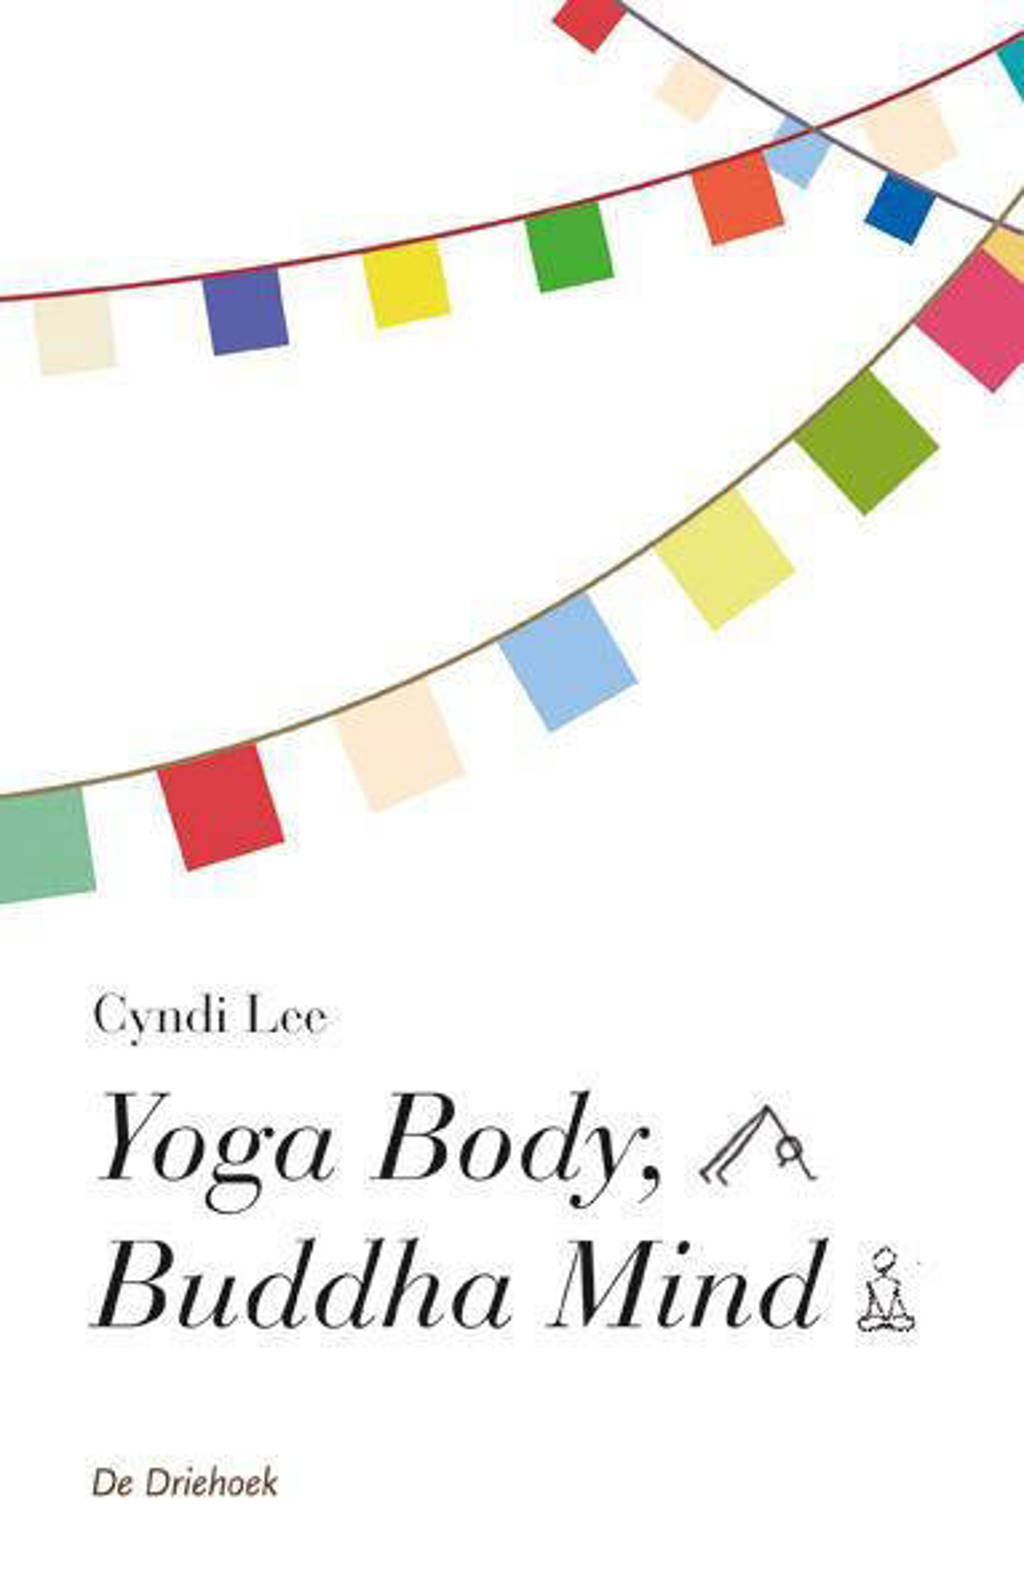 Yoga body, Buddha mind - Cindi Lee